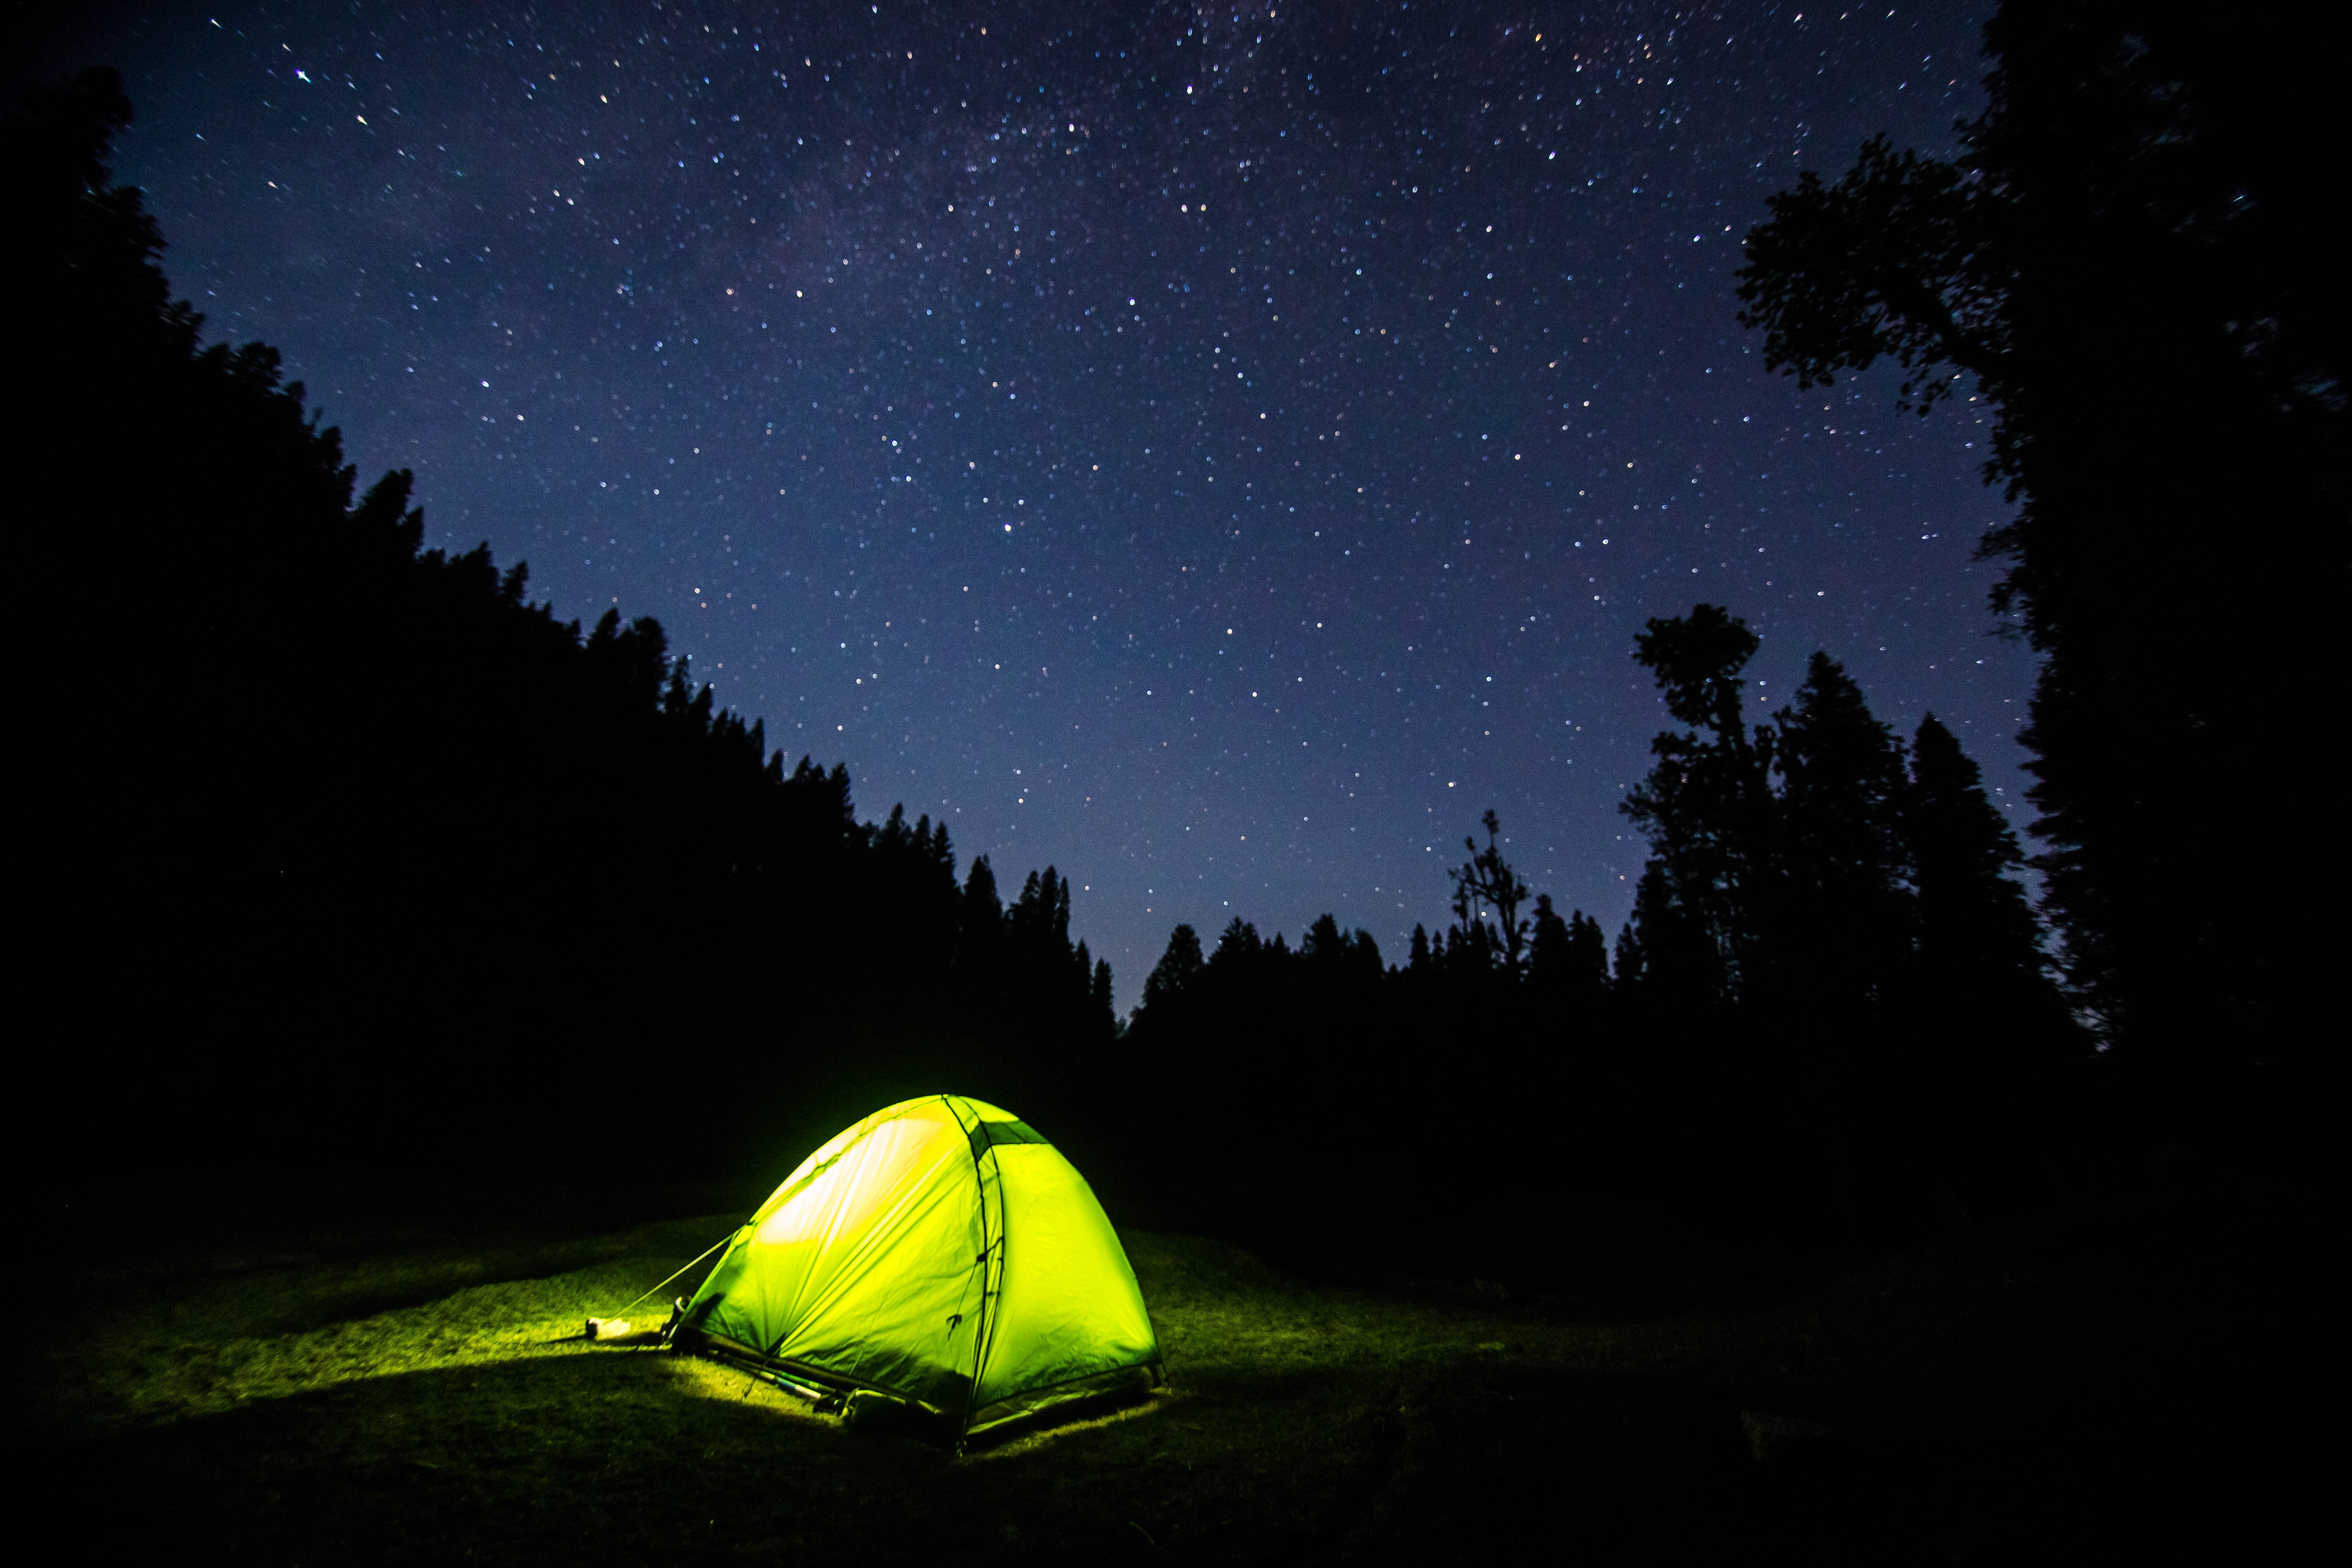 Light in a green tent surrounded by silhouettes of trees on a starry night